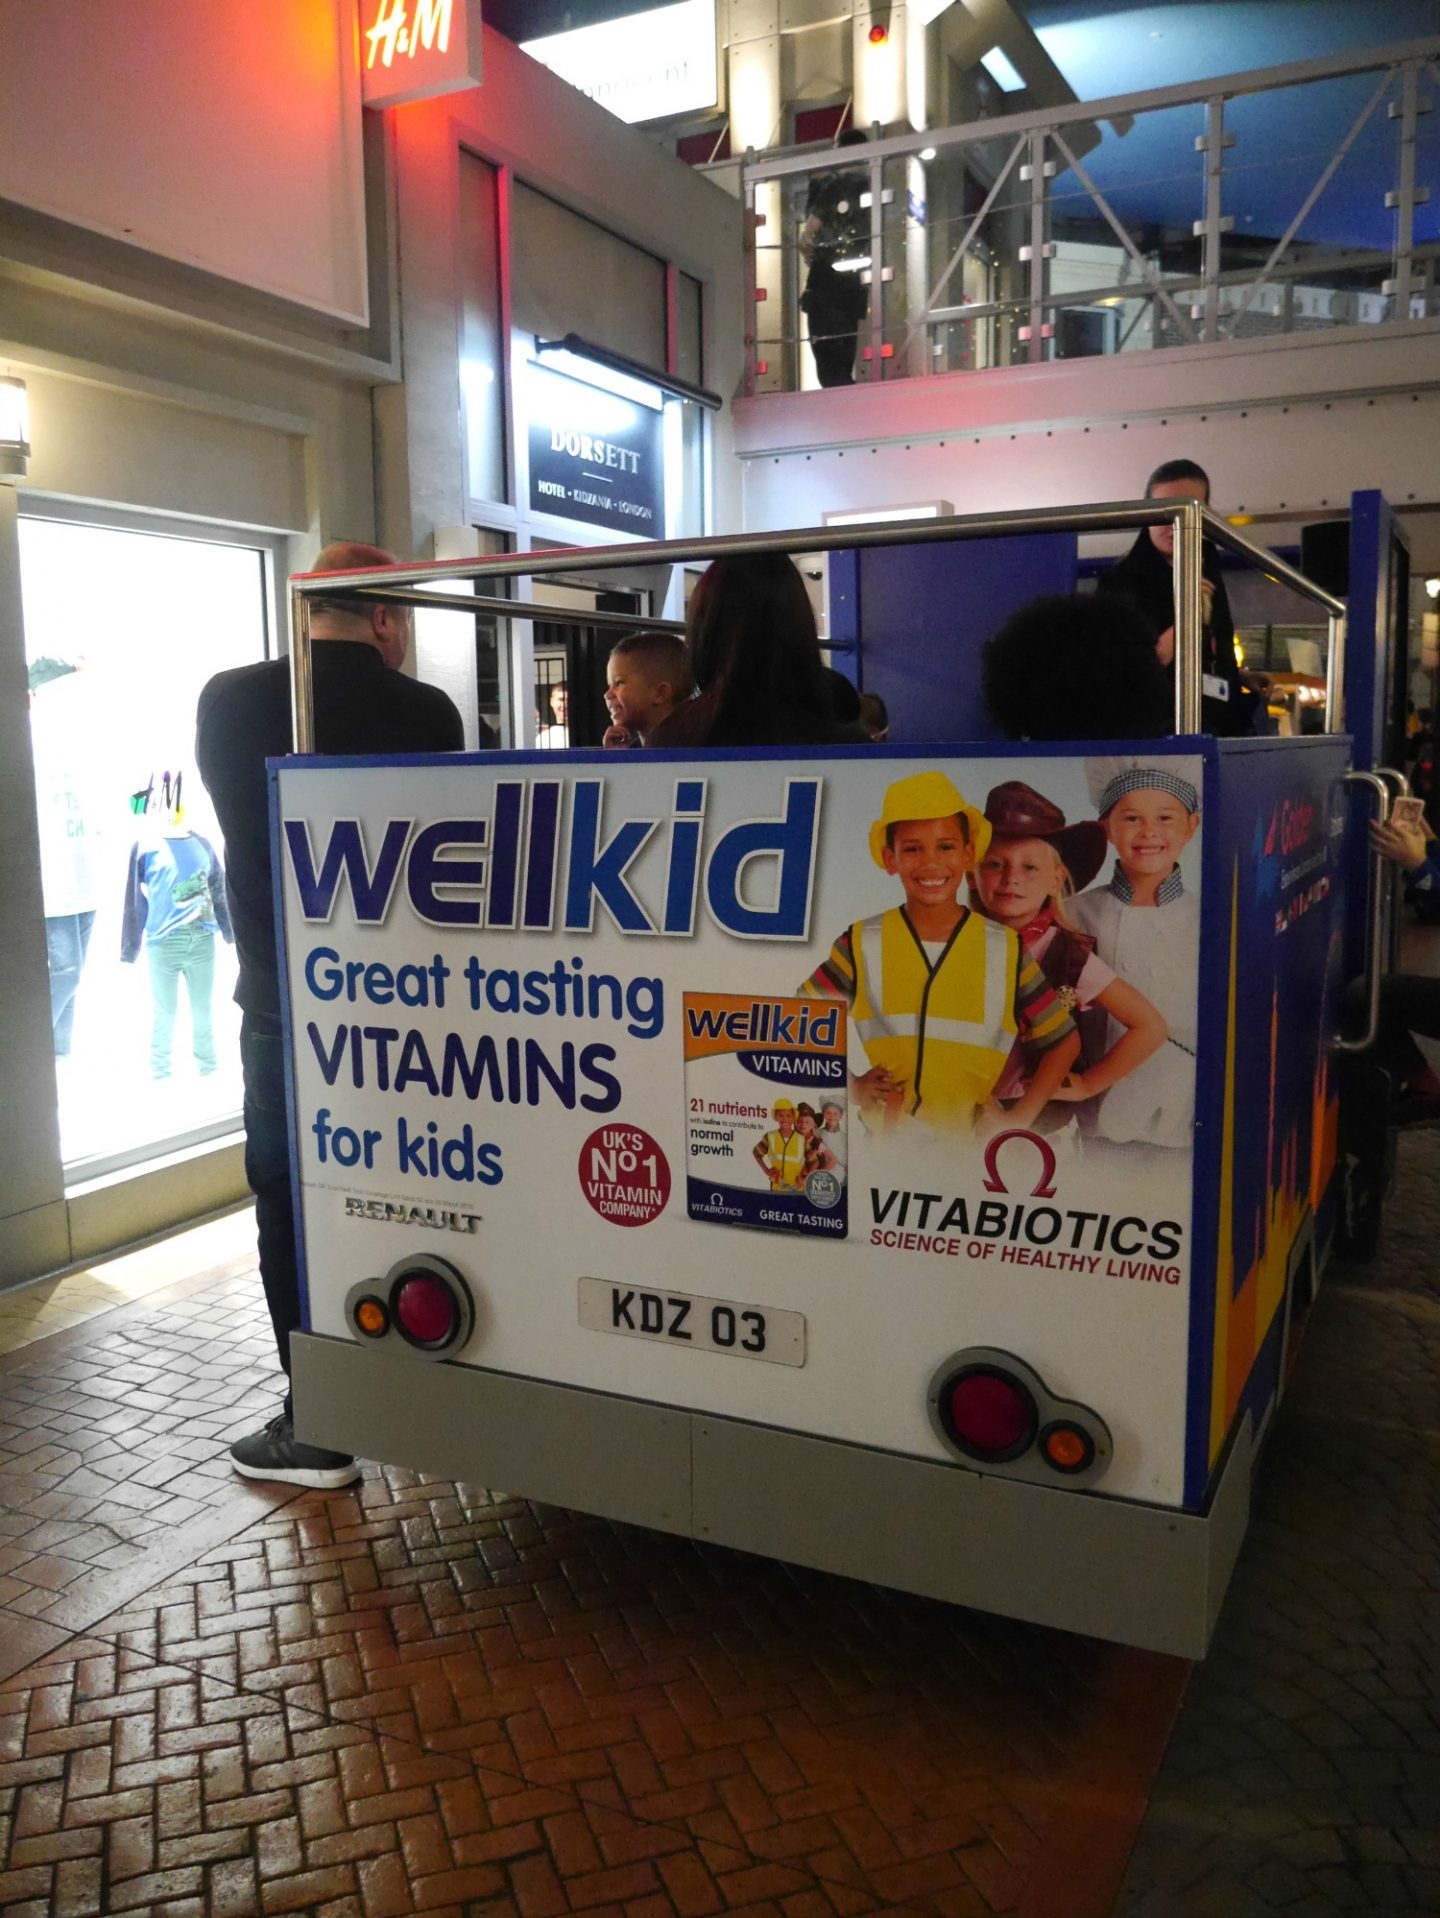 Wellkid vitamins at Kidzania London